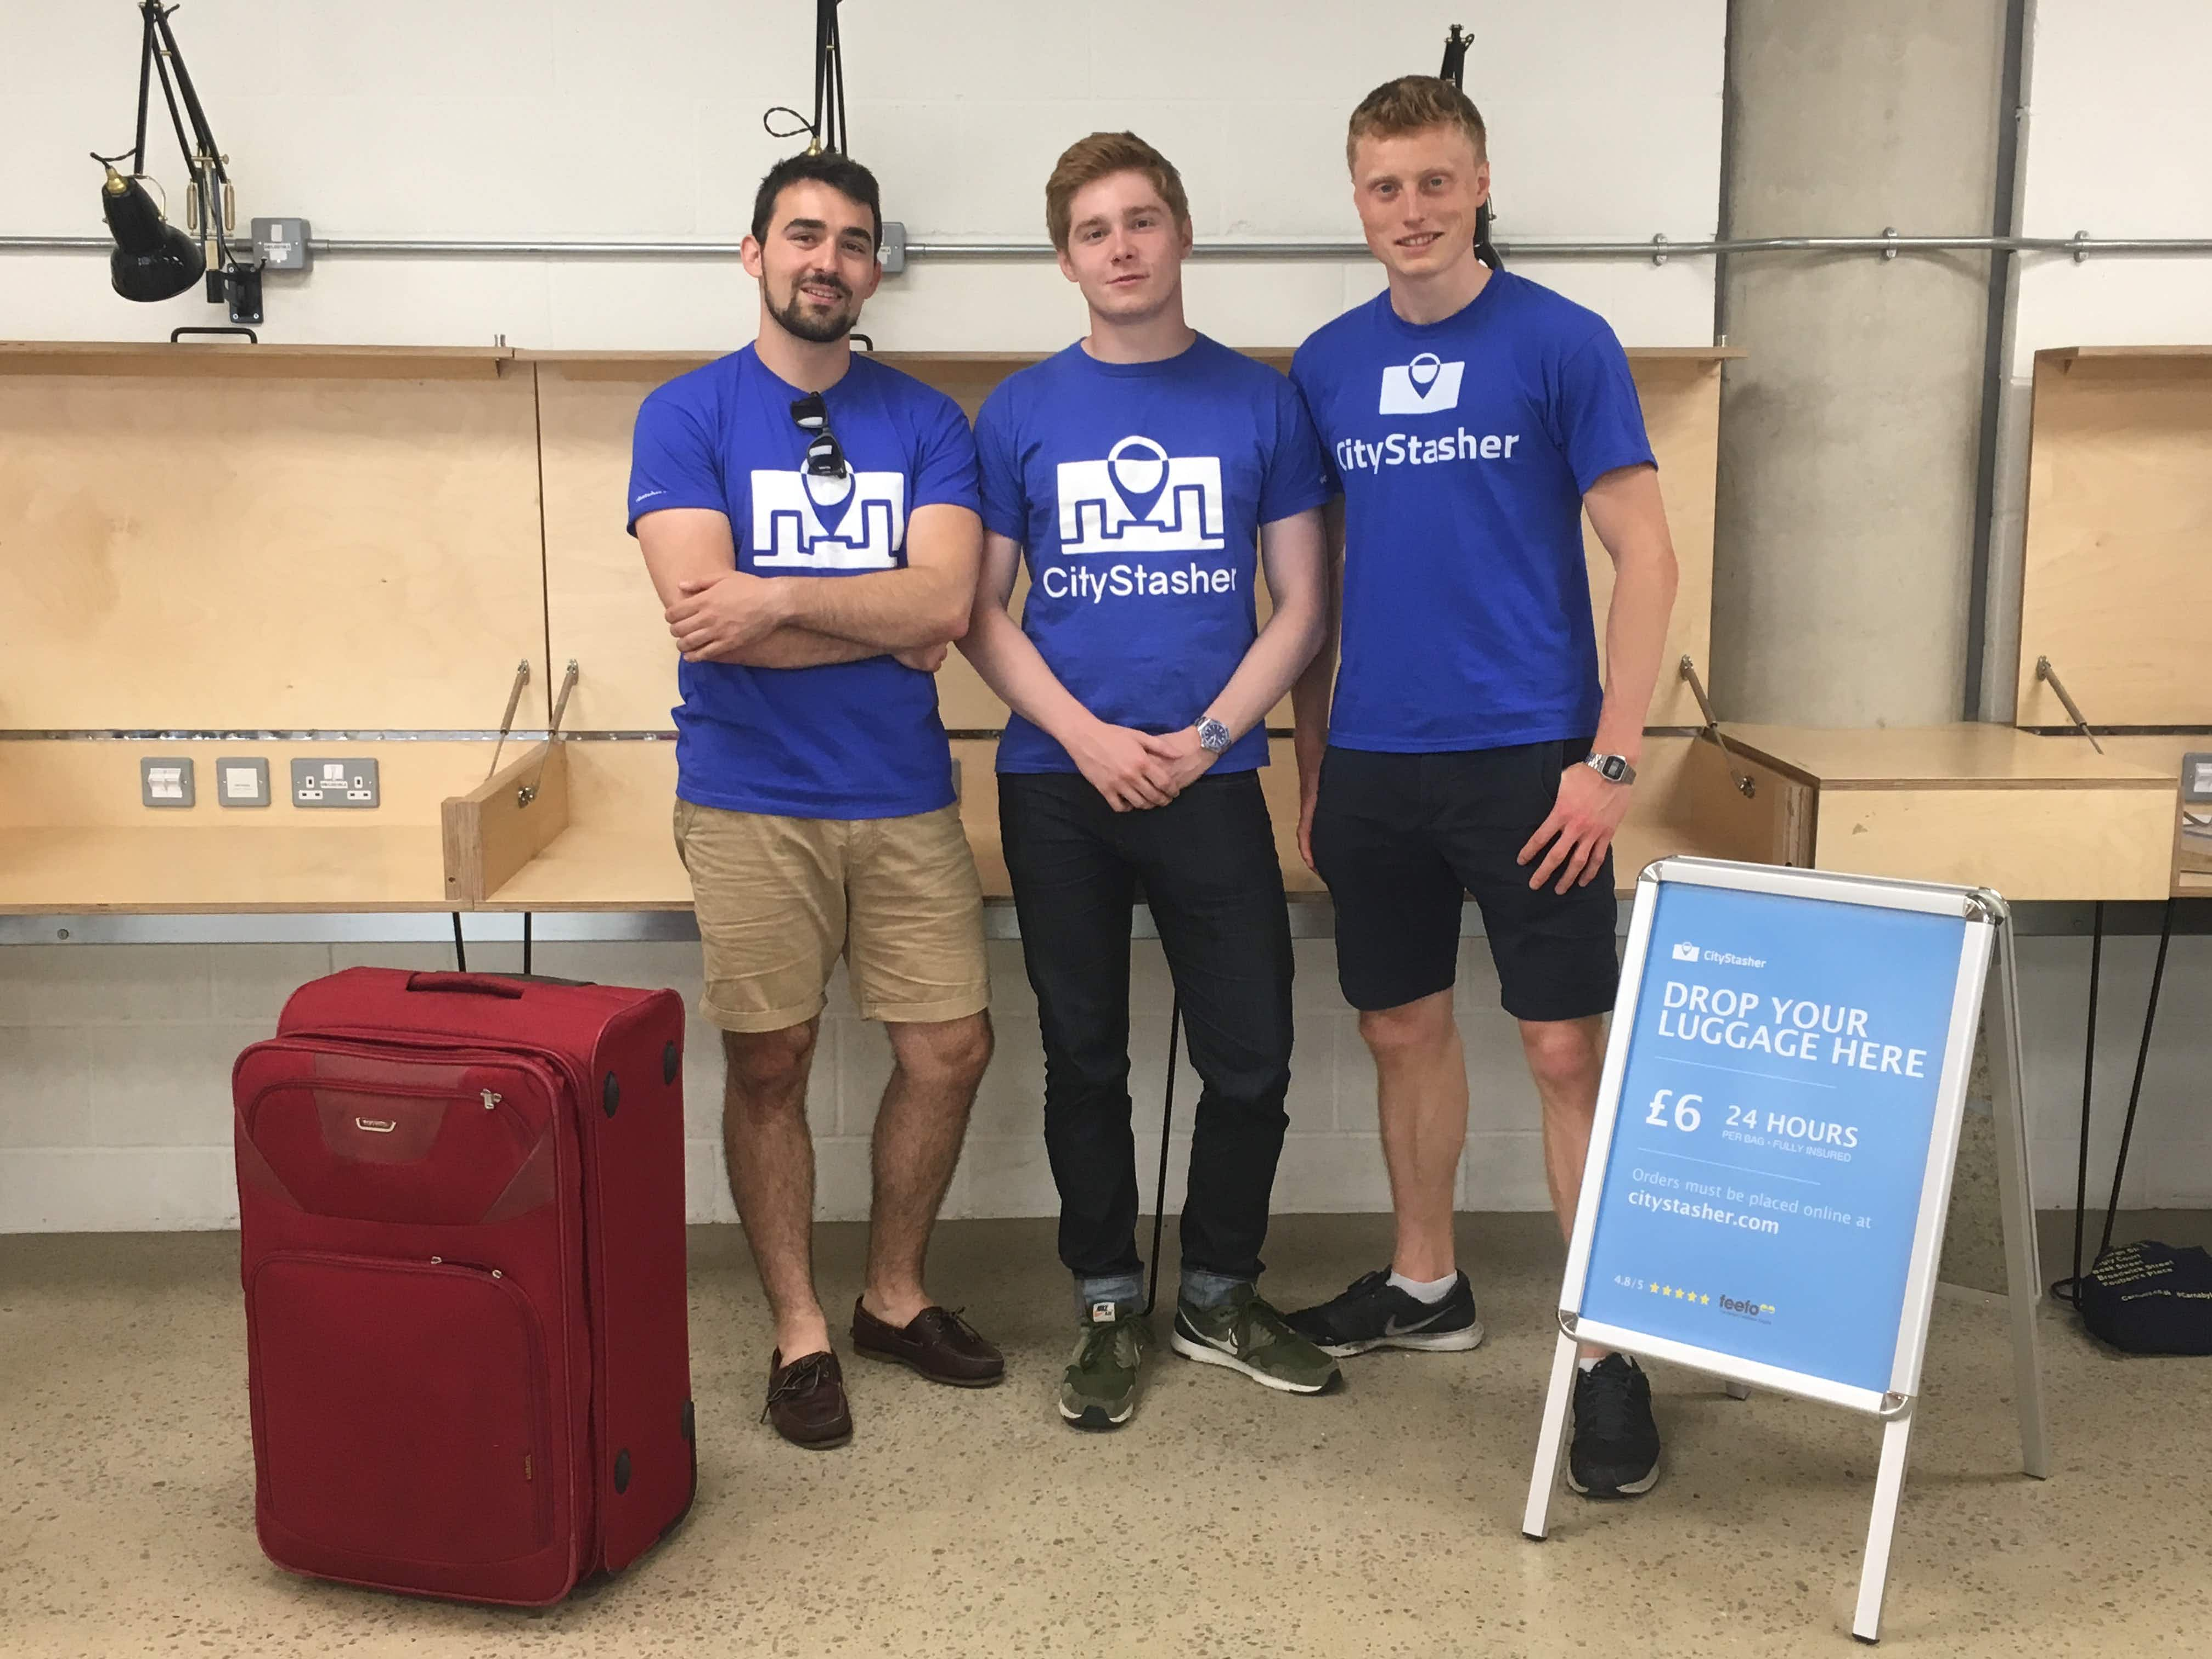 Lugging your bags around the city? Startup aims to make storing luggage around London much easier